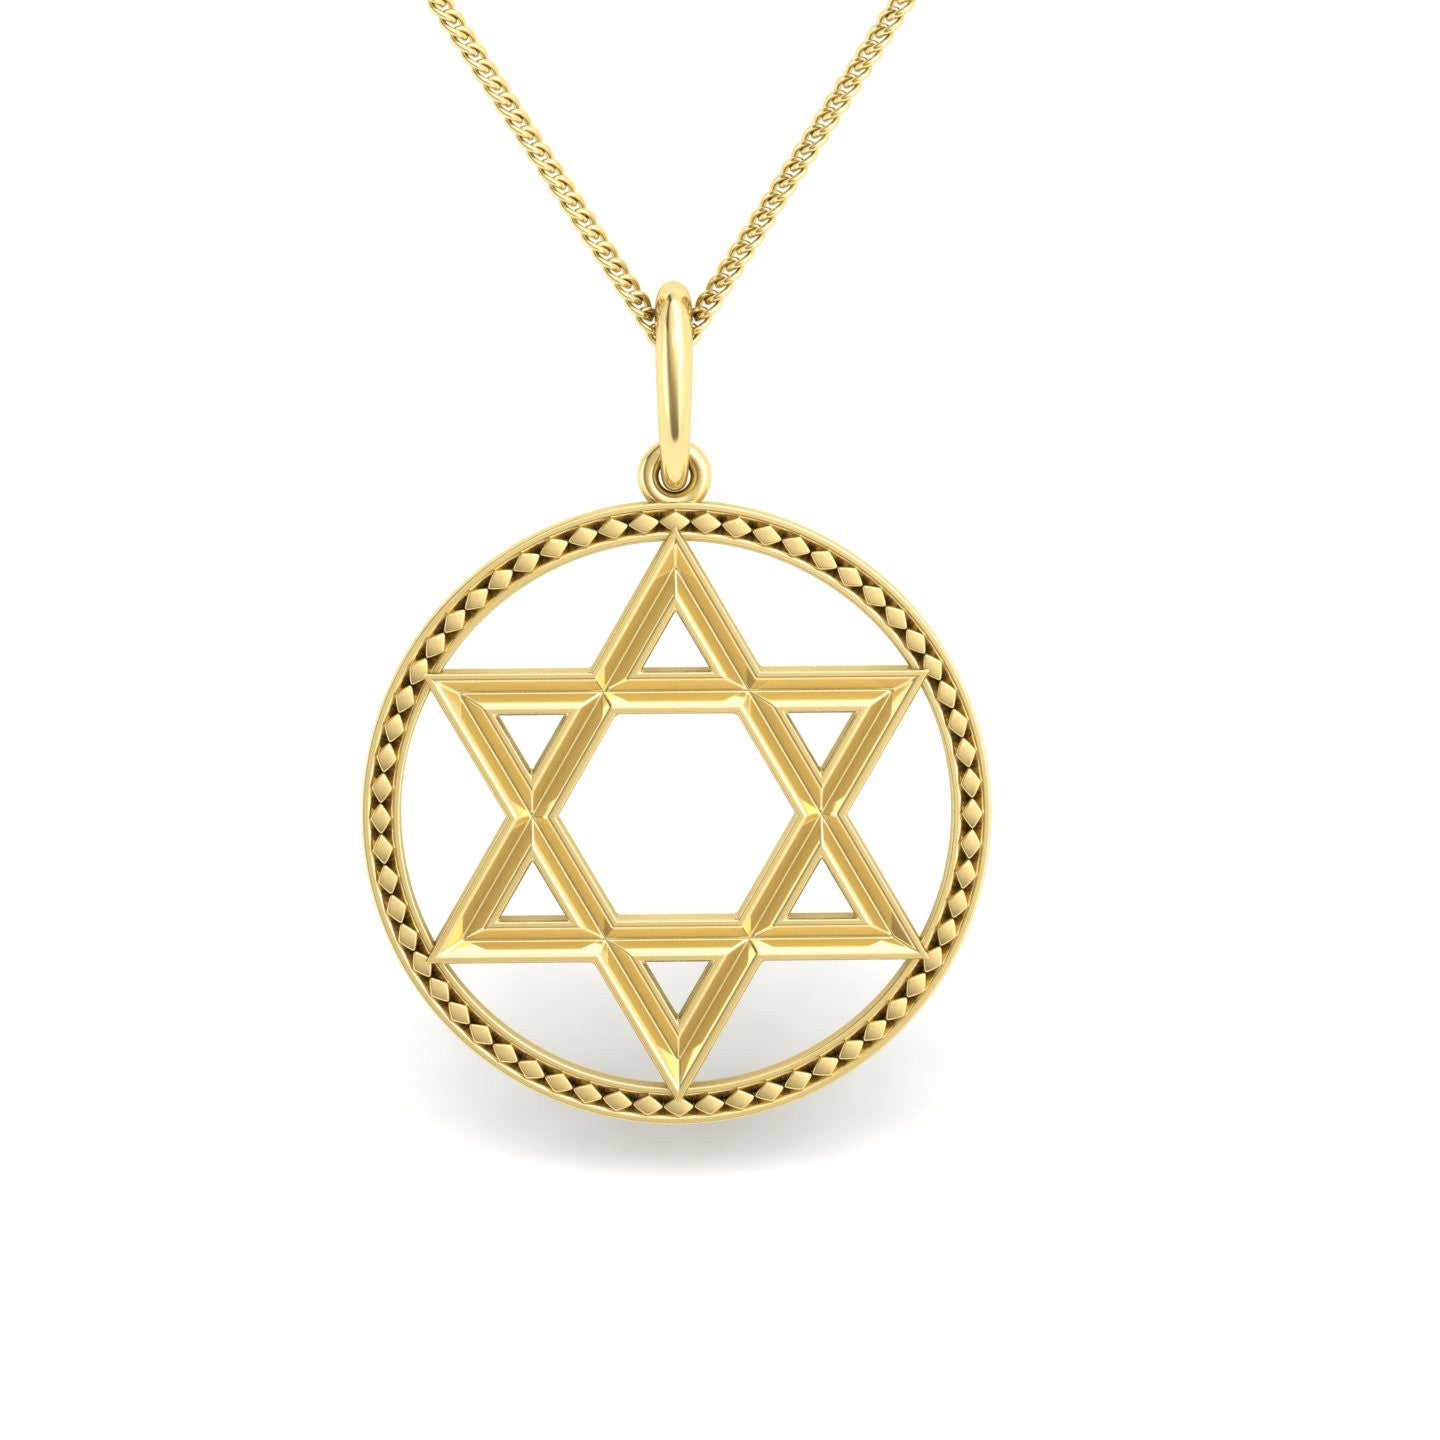 products pendant yellow gold blue petite star magen of k topaz jewelryjudaica david jewish chain necklace